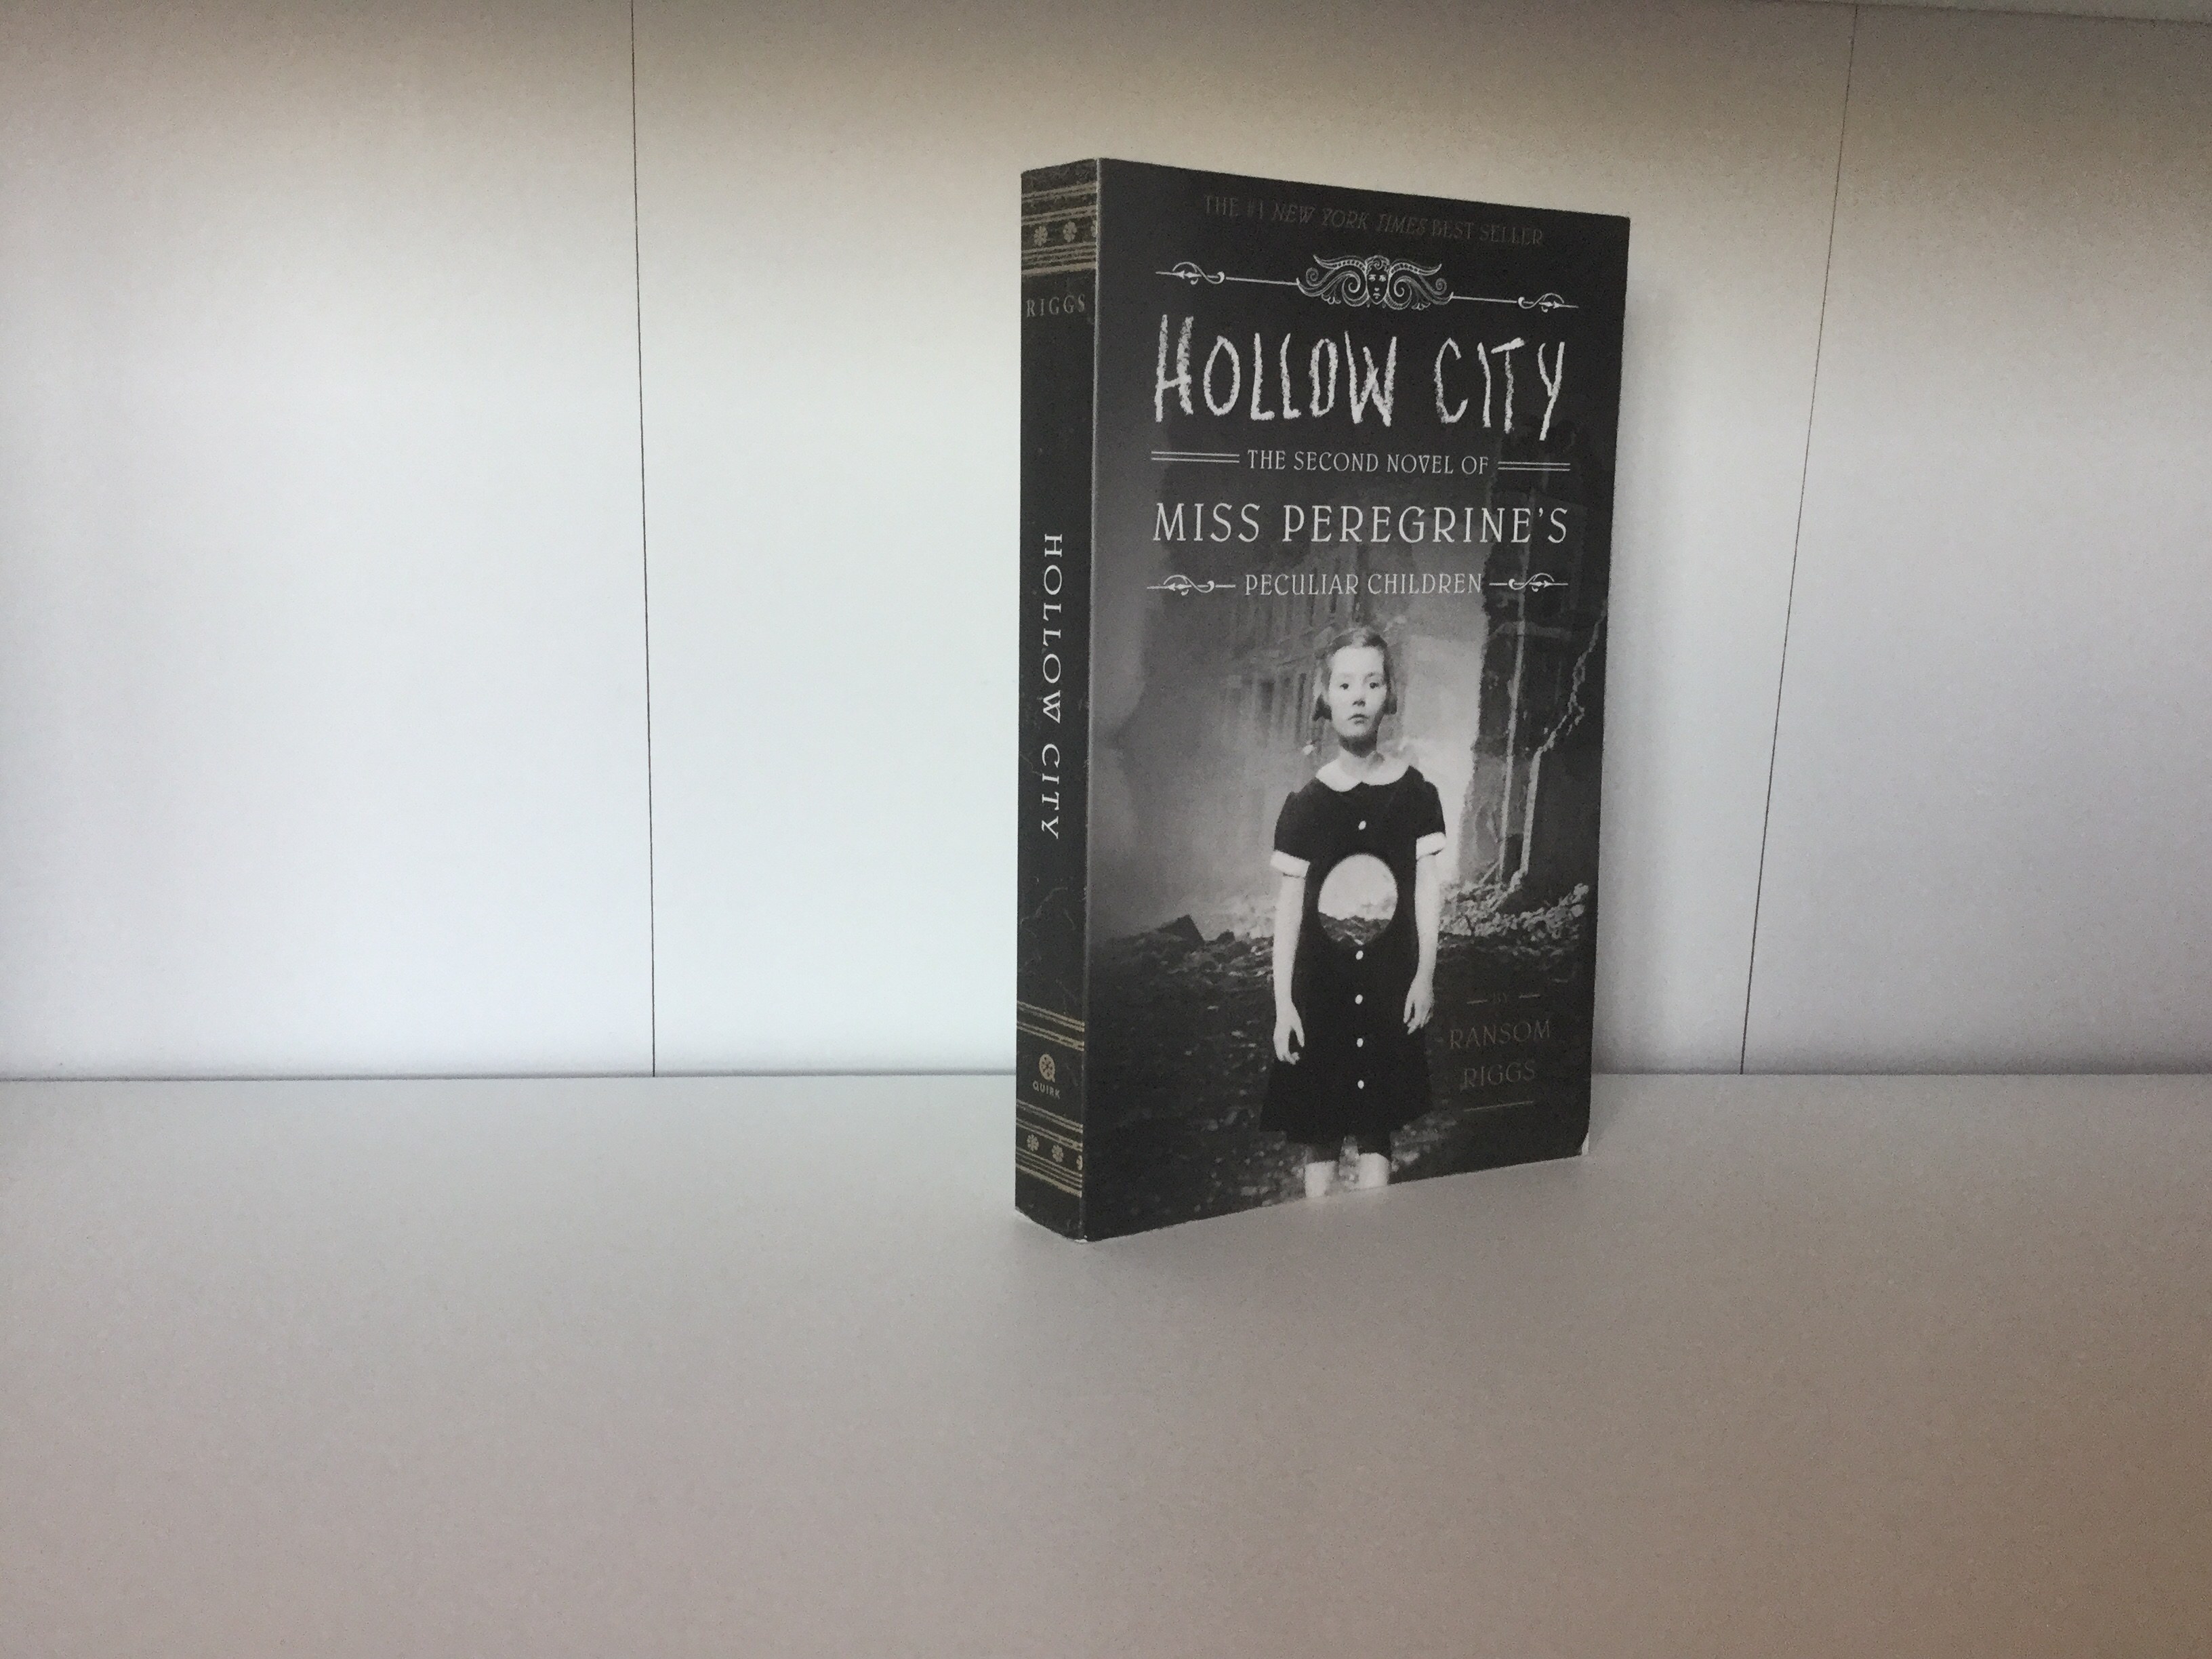 The cover of Hollow City by Ransom Riggs